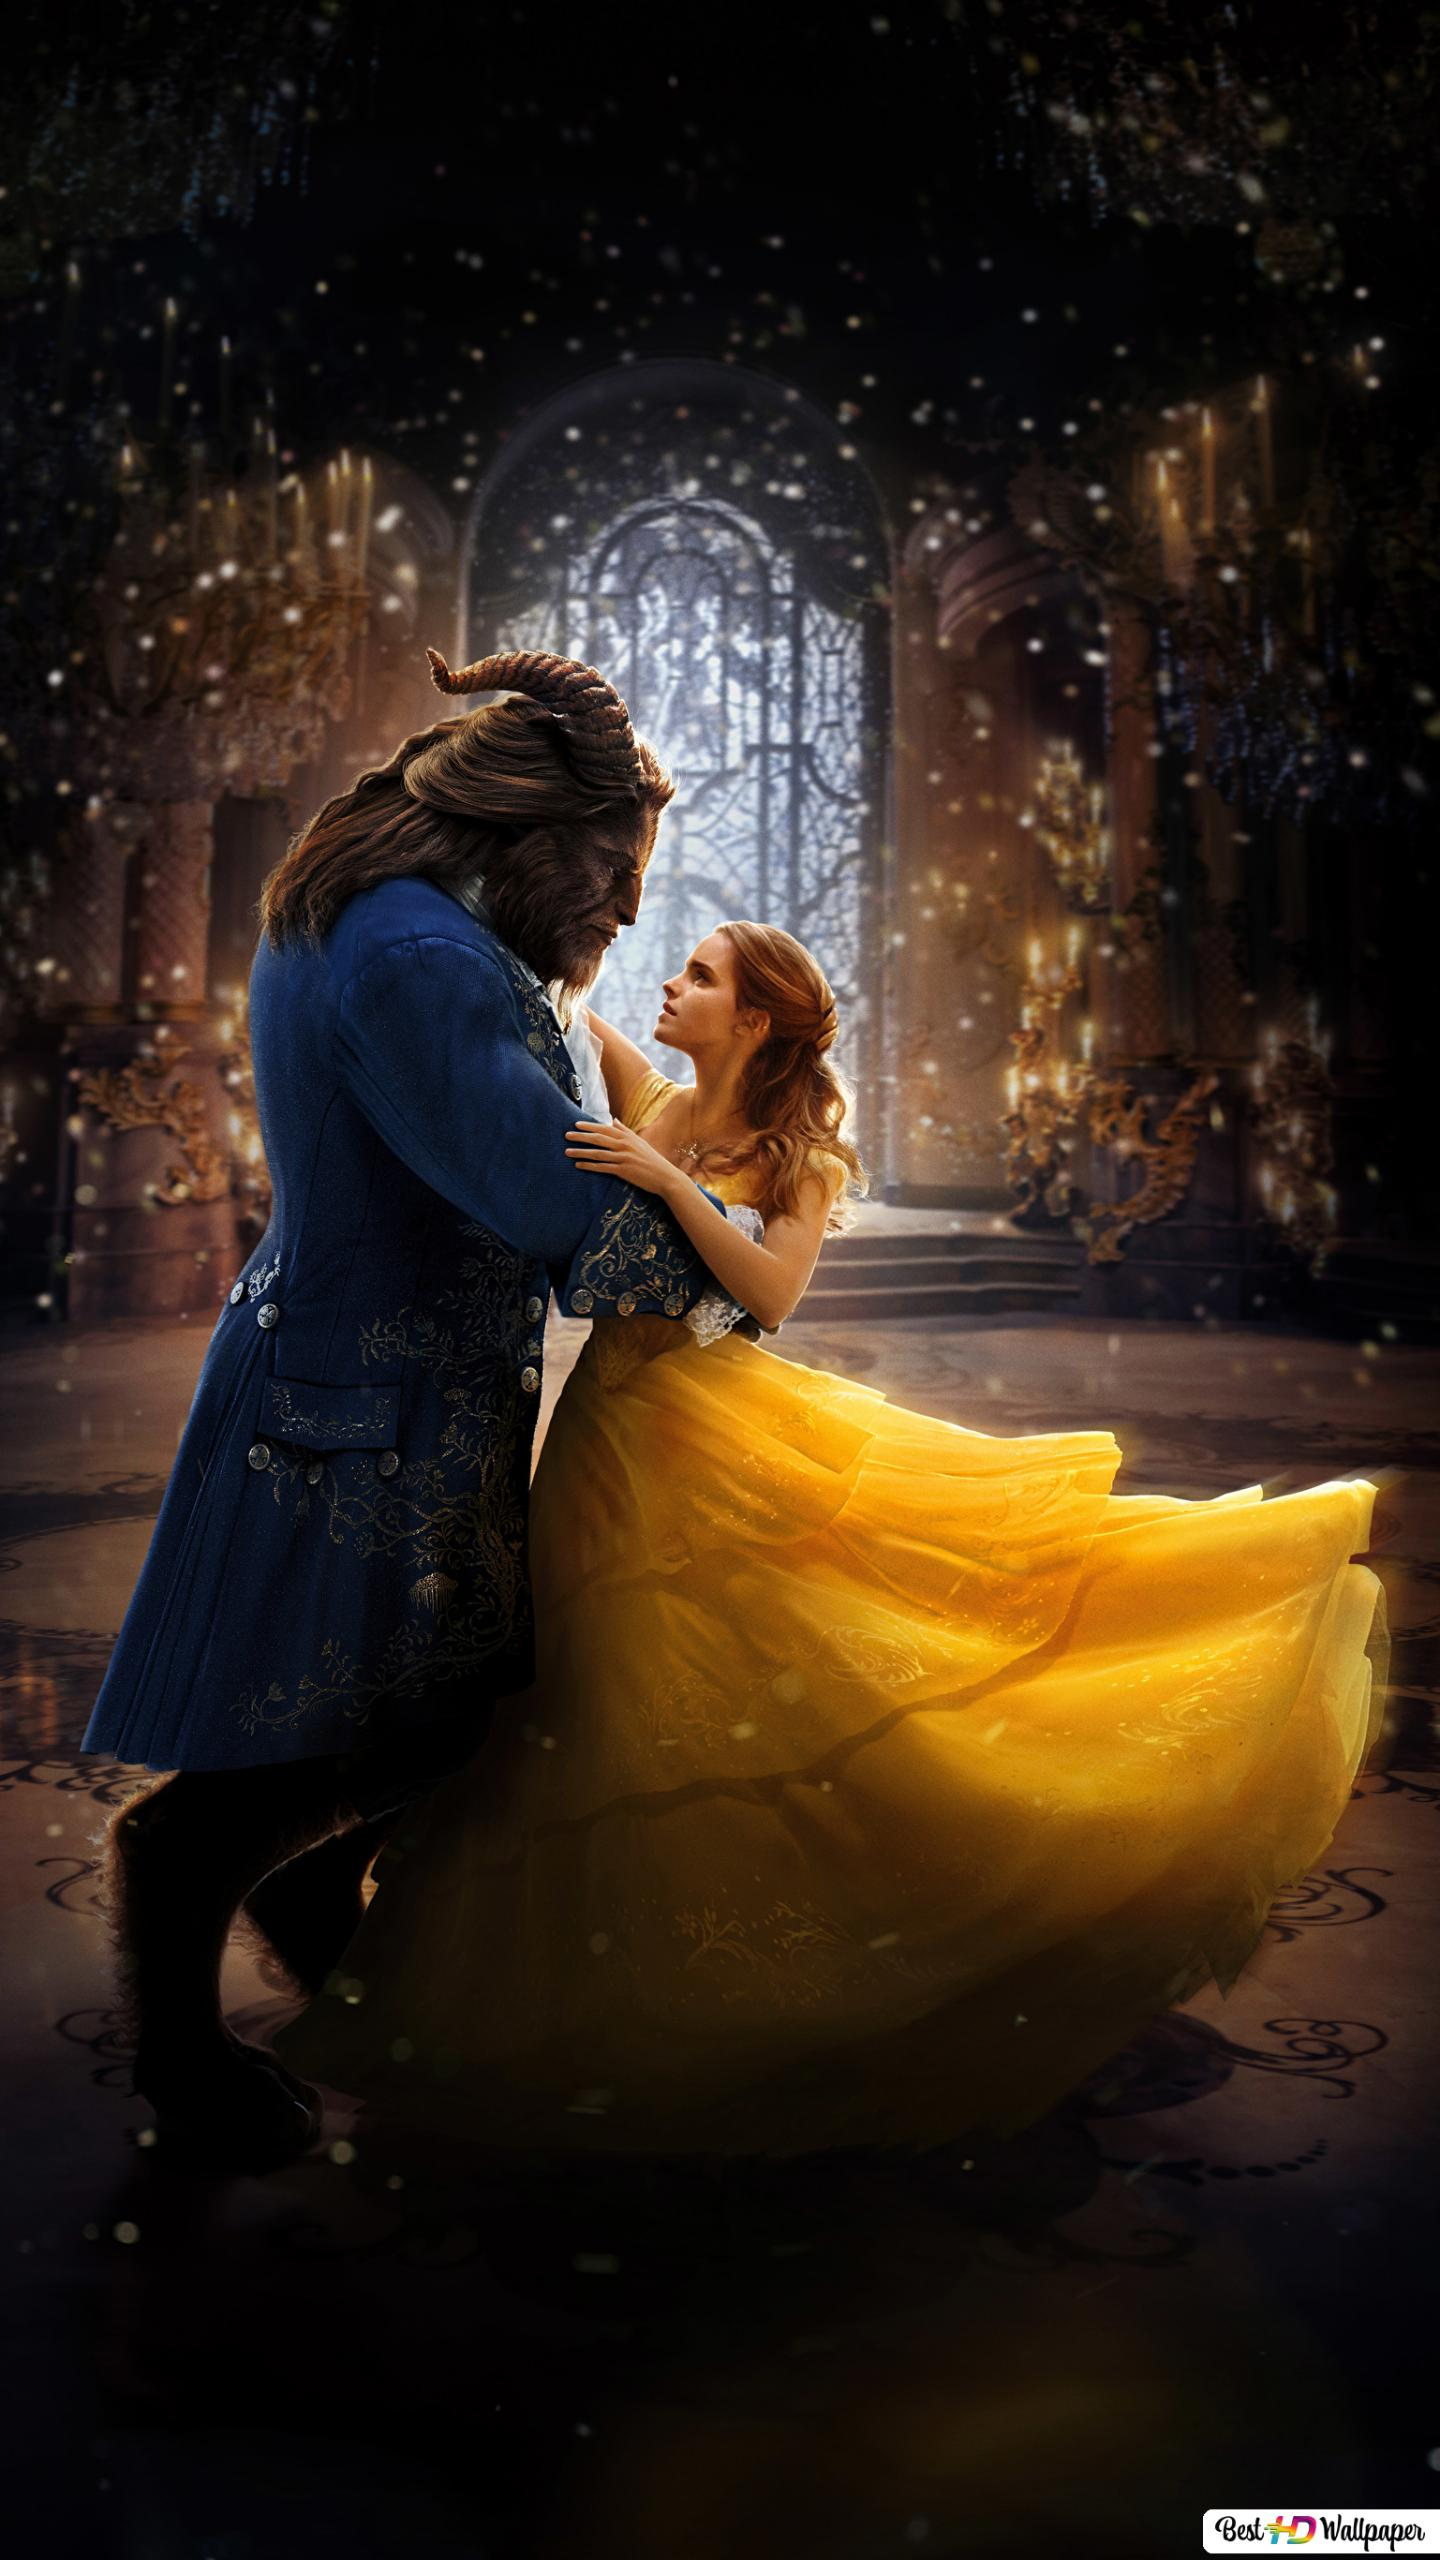 Beauty And The Beast 2017 Movie Belle And Beast Dancing Hd